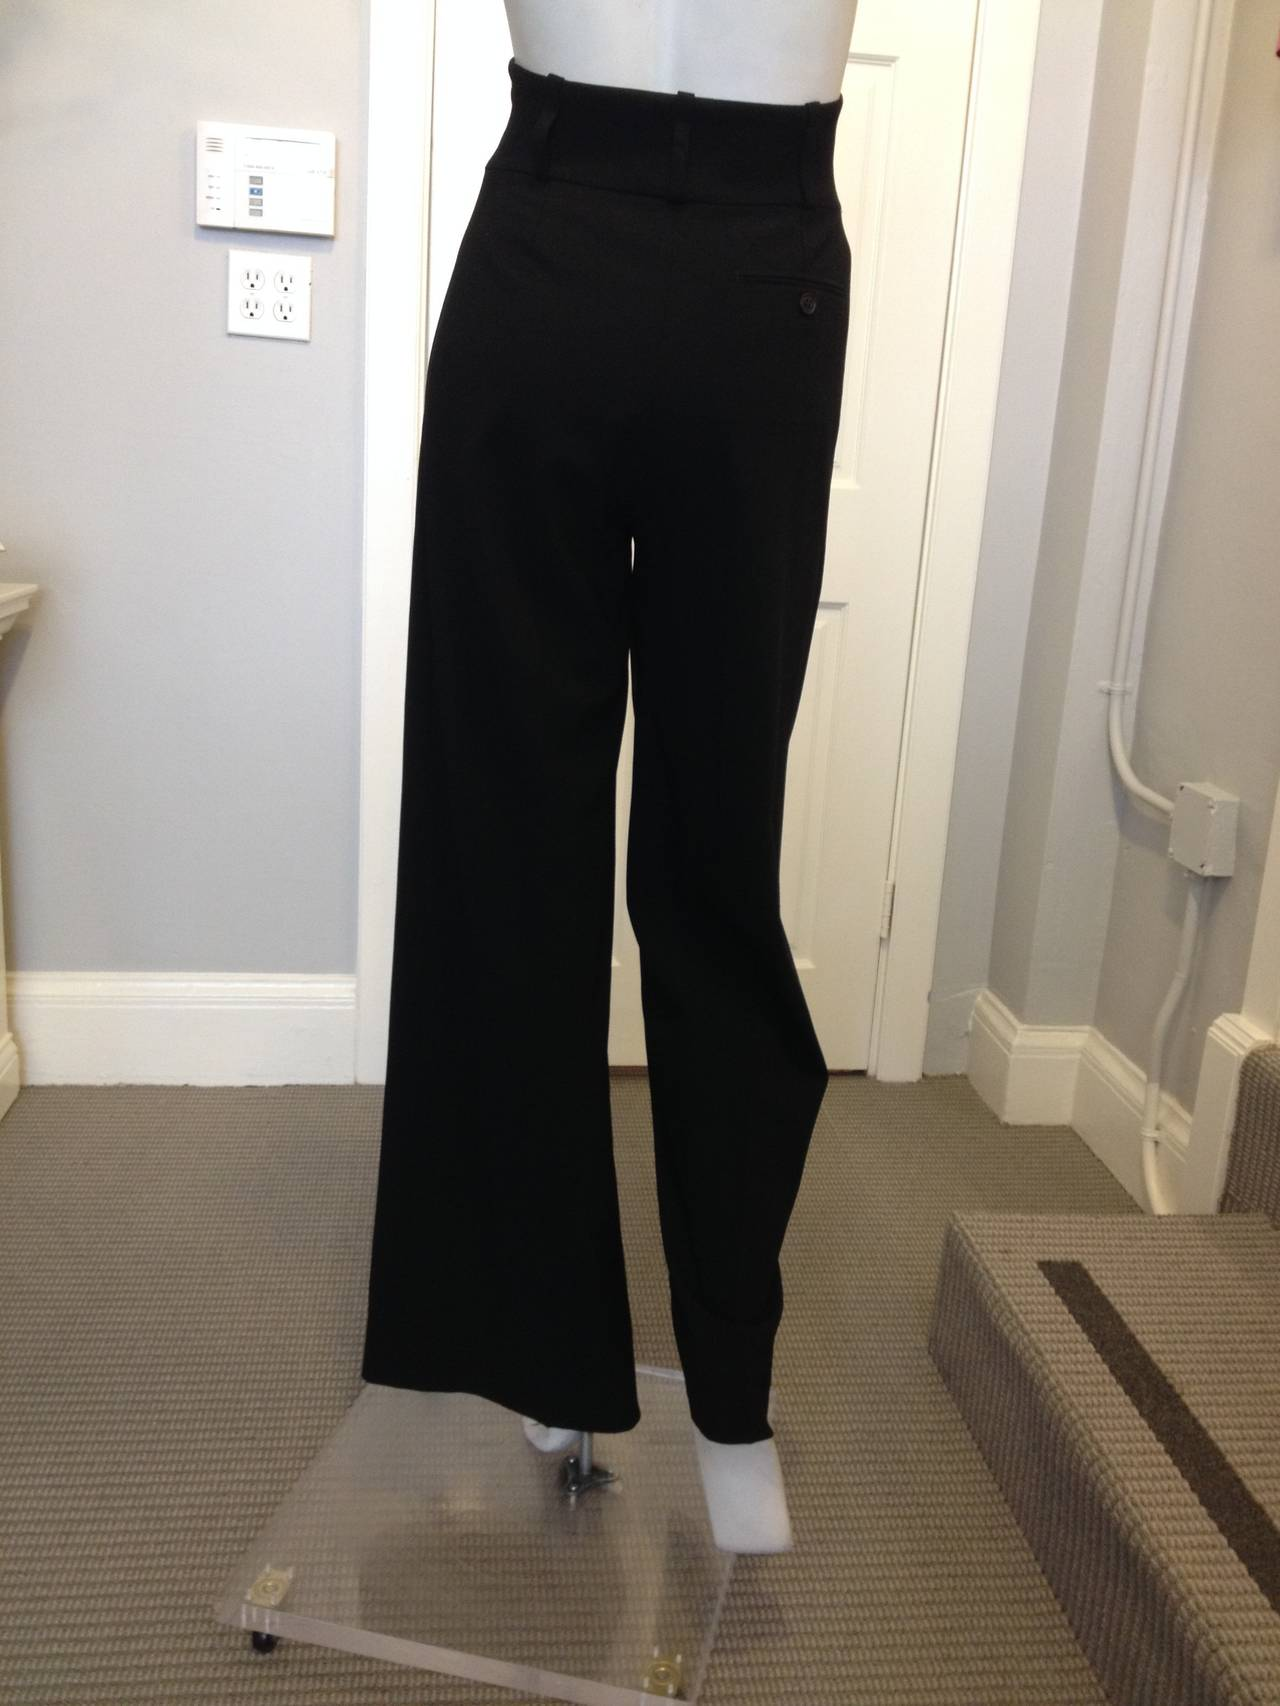 Hermes Black Pant with High Waist 4